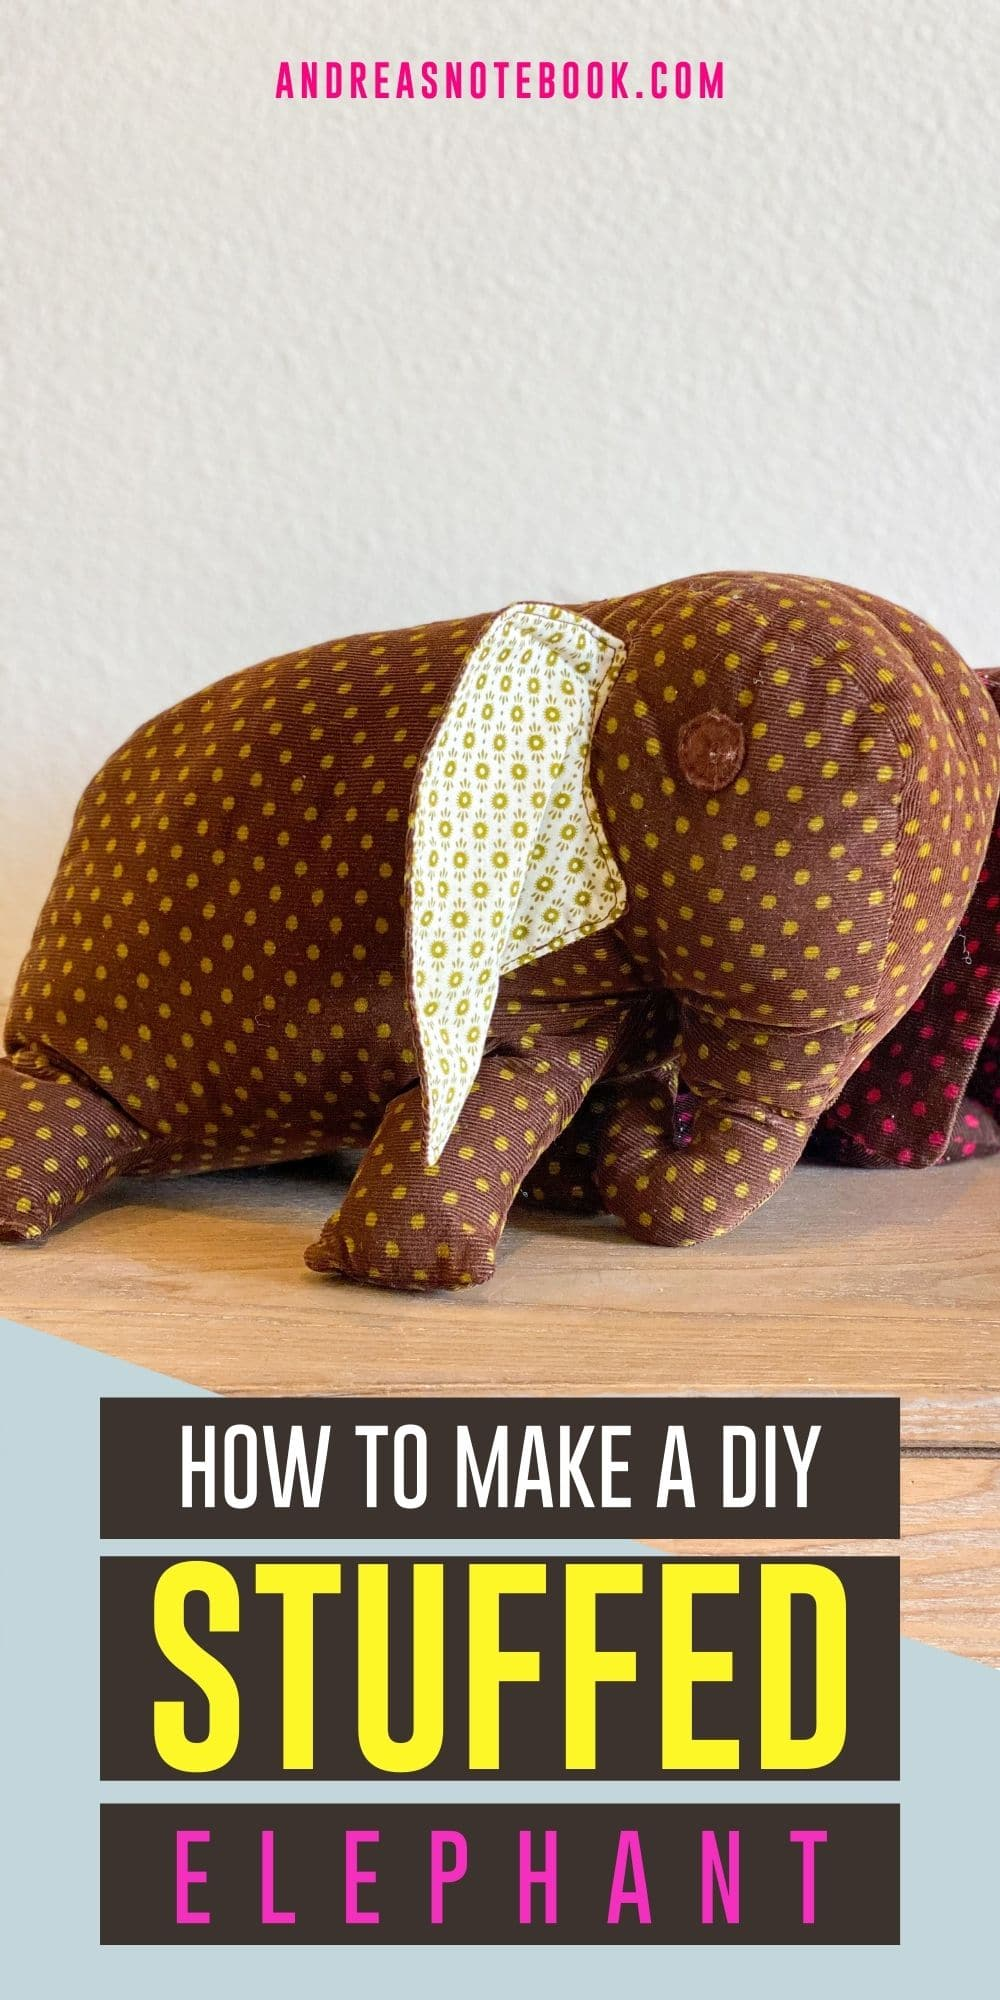 how to sew a stuffed elephant - image of two floppy stuffed elephants